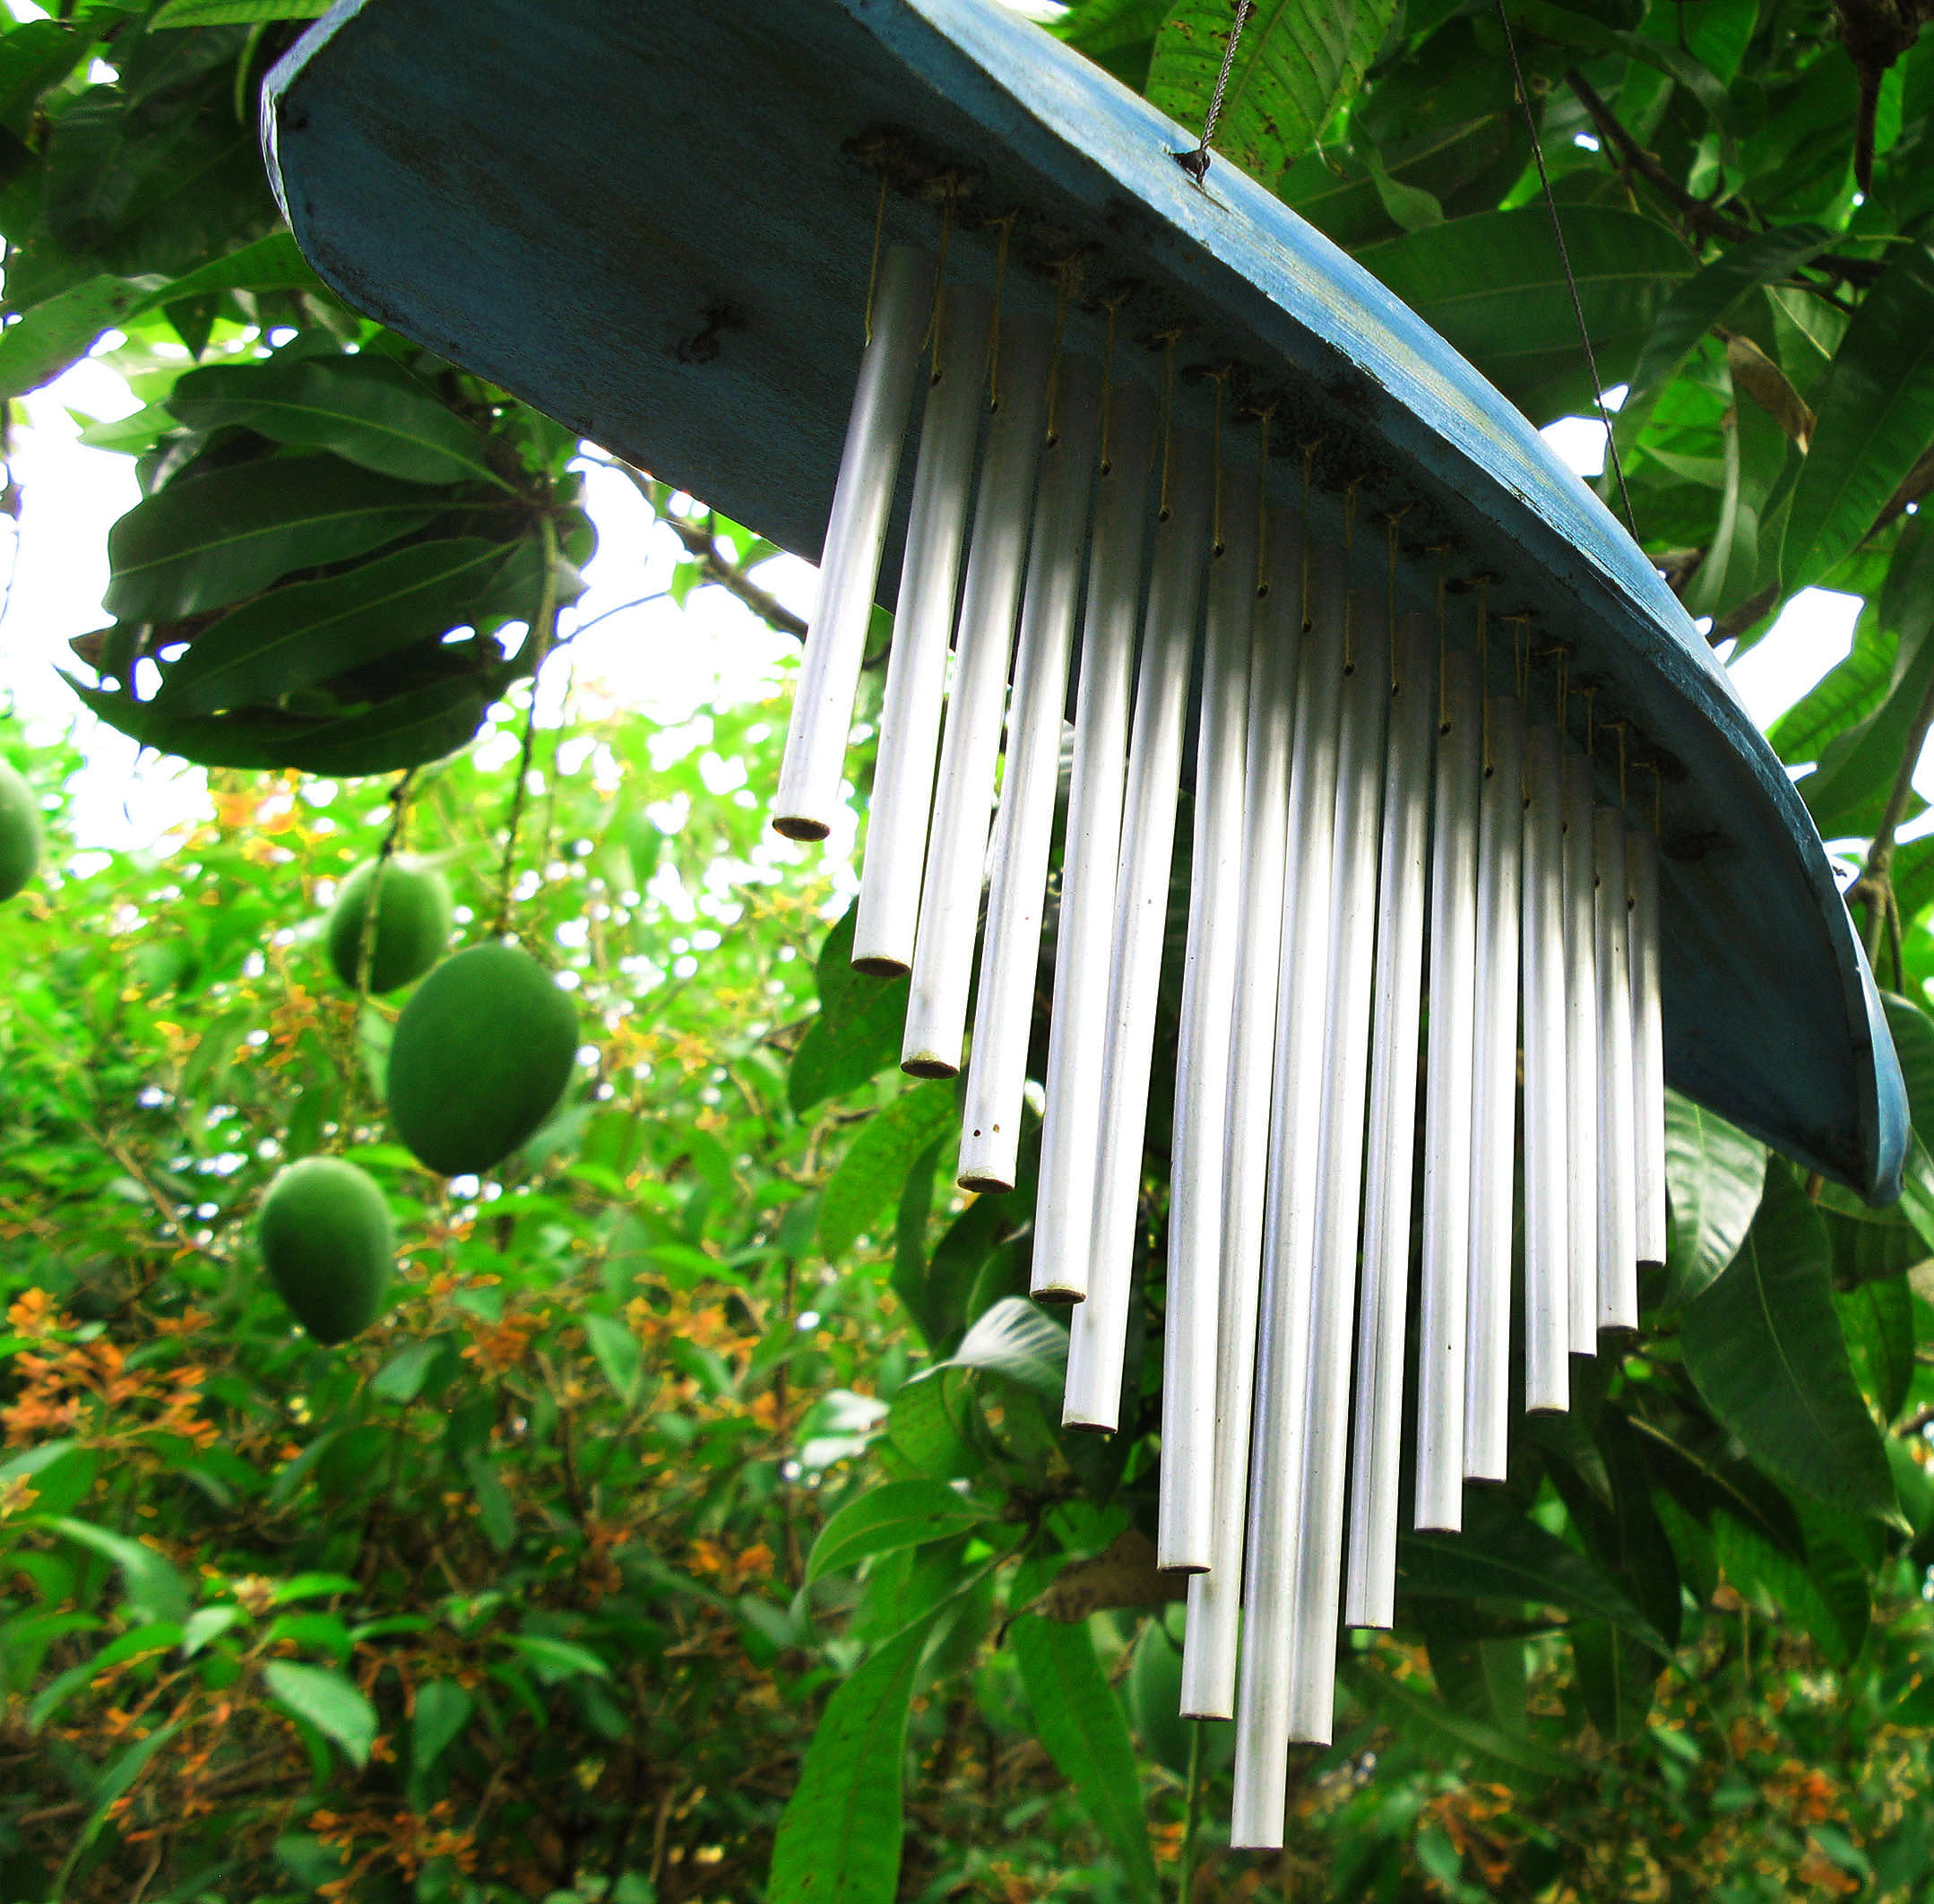 Three Reasons Why Wind Chimes Make Excellent Sympathy Gifts